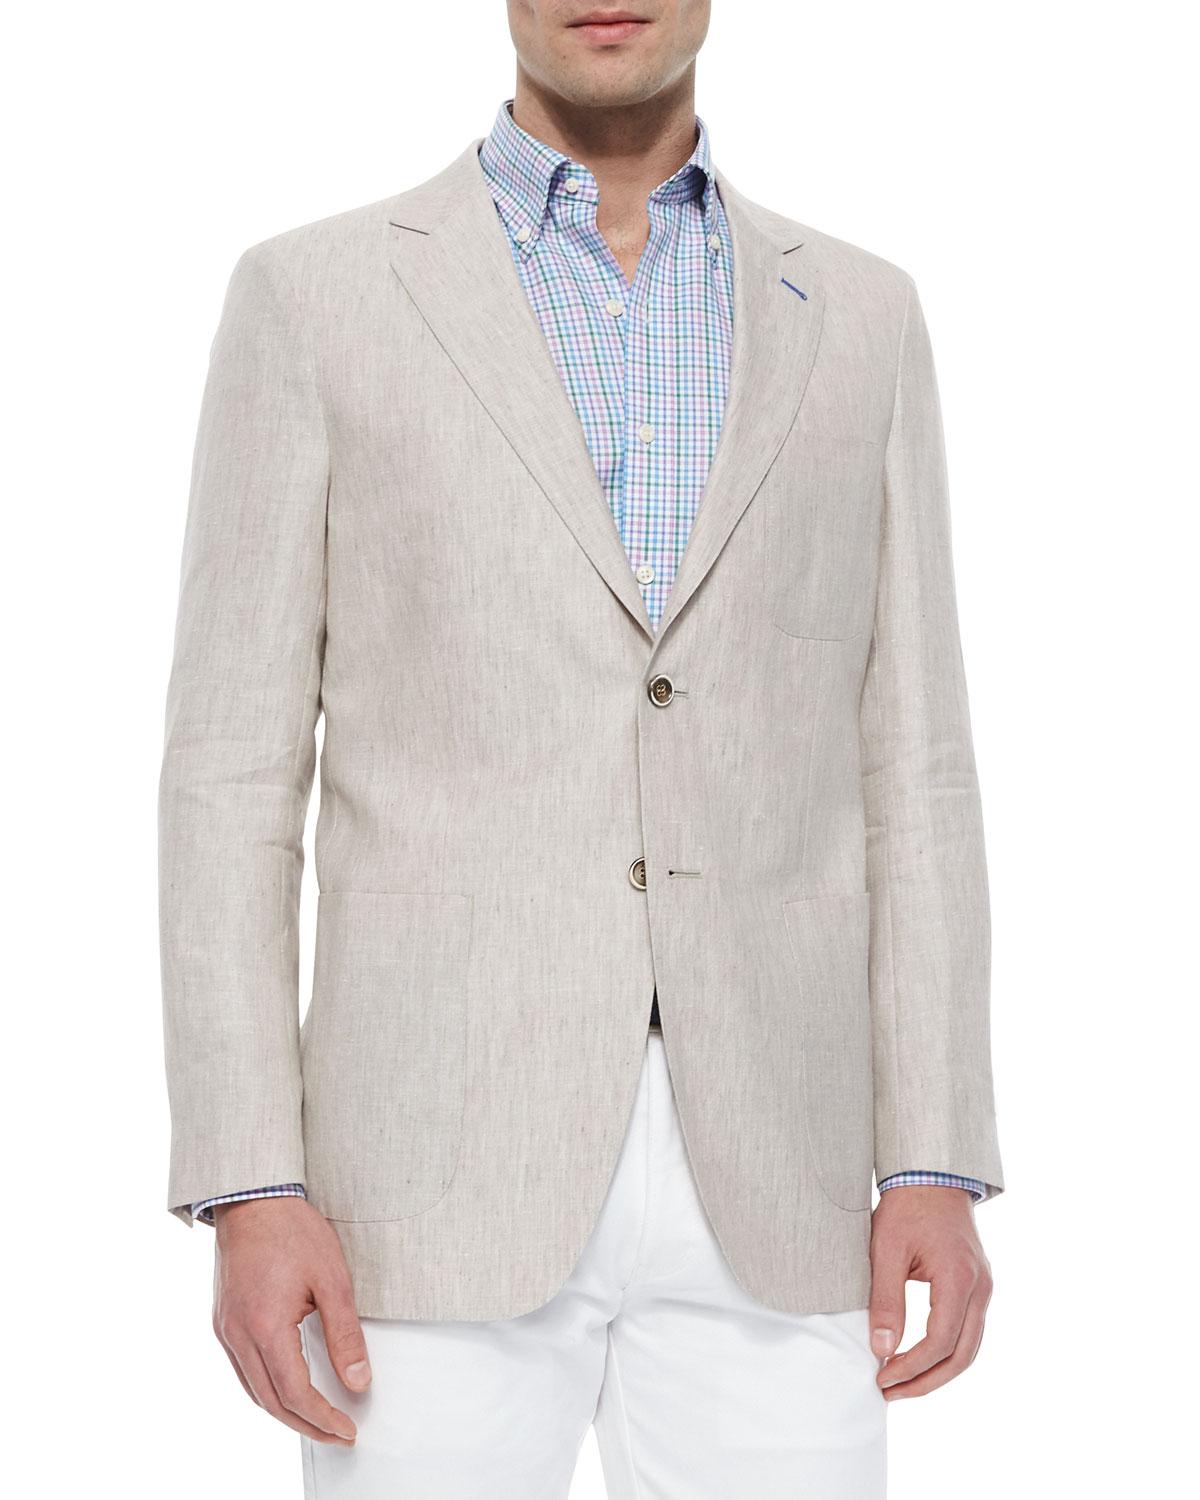 Free shipping on blazers and sport coats at hamlergoodchain.ga Shop the latest styles from the best brands of blazers for men. Totally free shipping and returns.